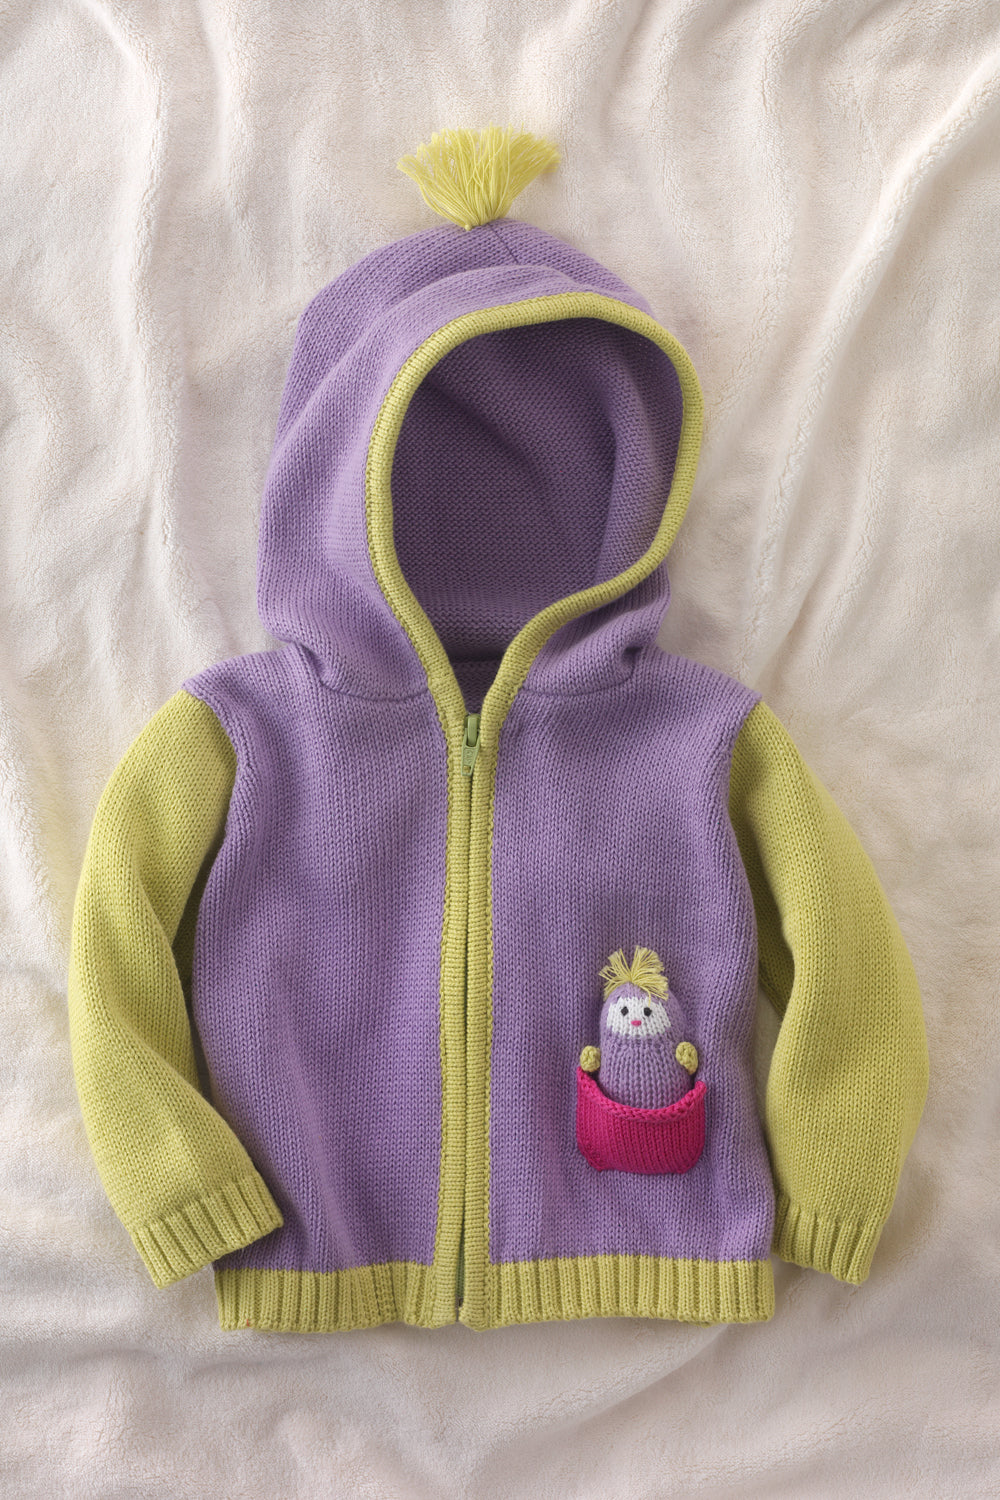 joobles-fair-trade-organic-baby-cardigan-sweater-icy-the-penguin